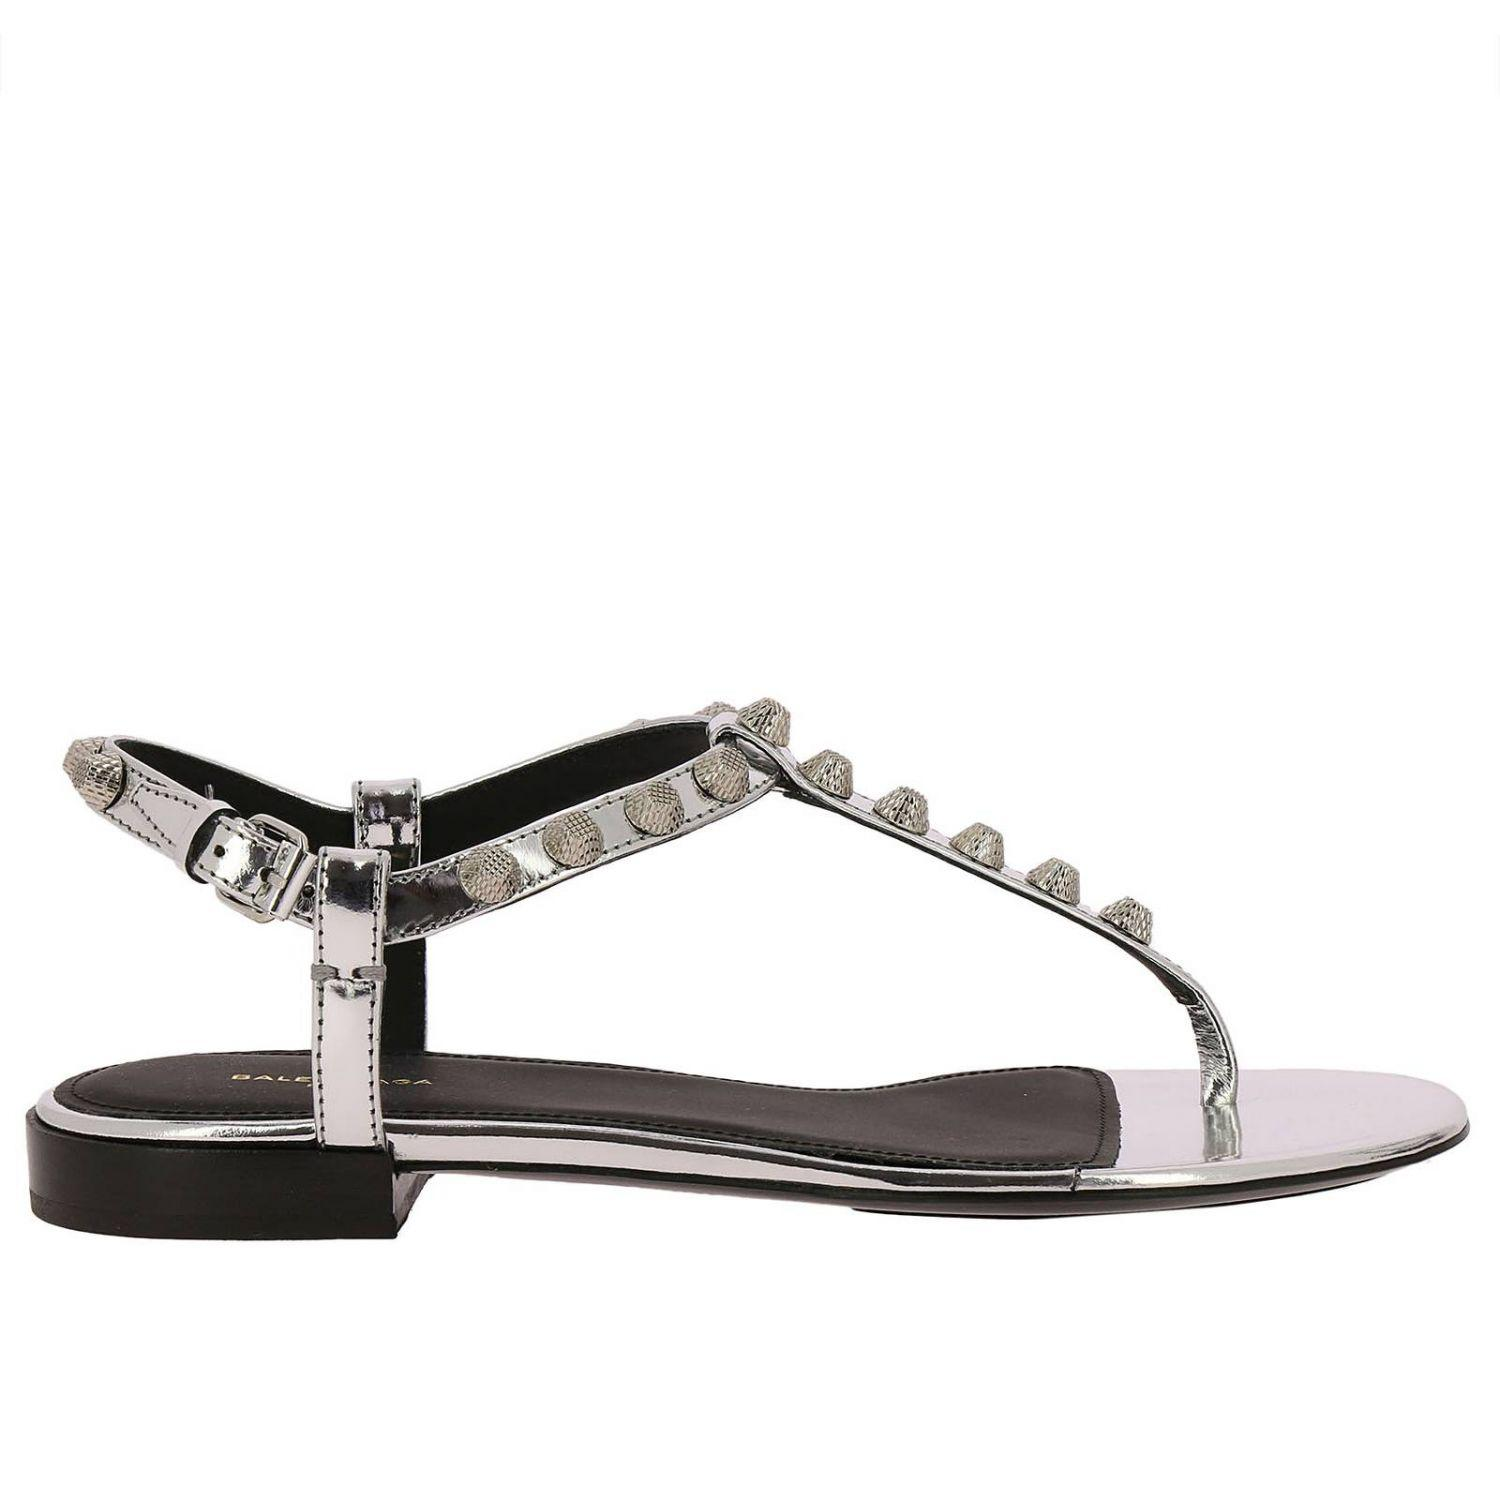 f74181b656dc Lyst - Balenciaga Flat Sandals Shoes Women in Metallic